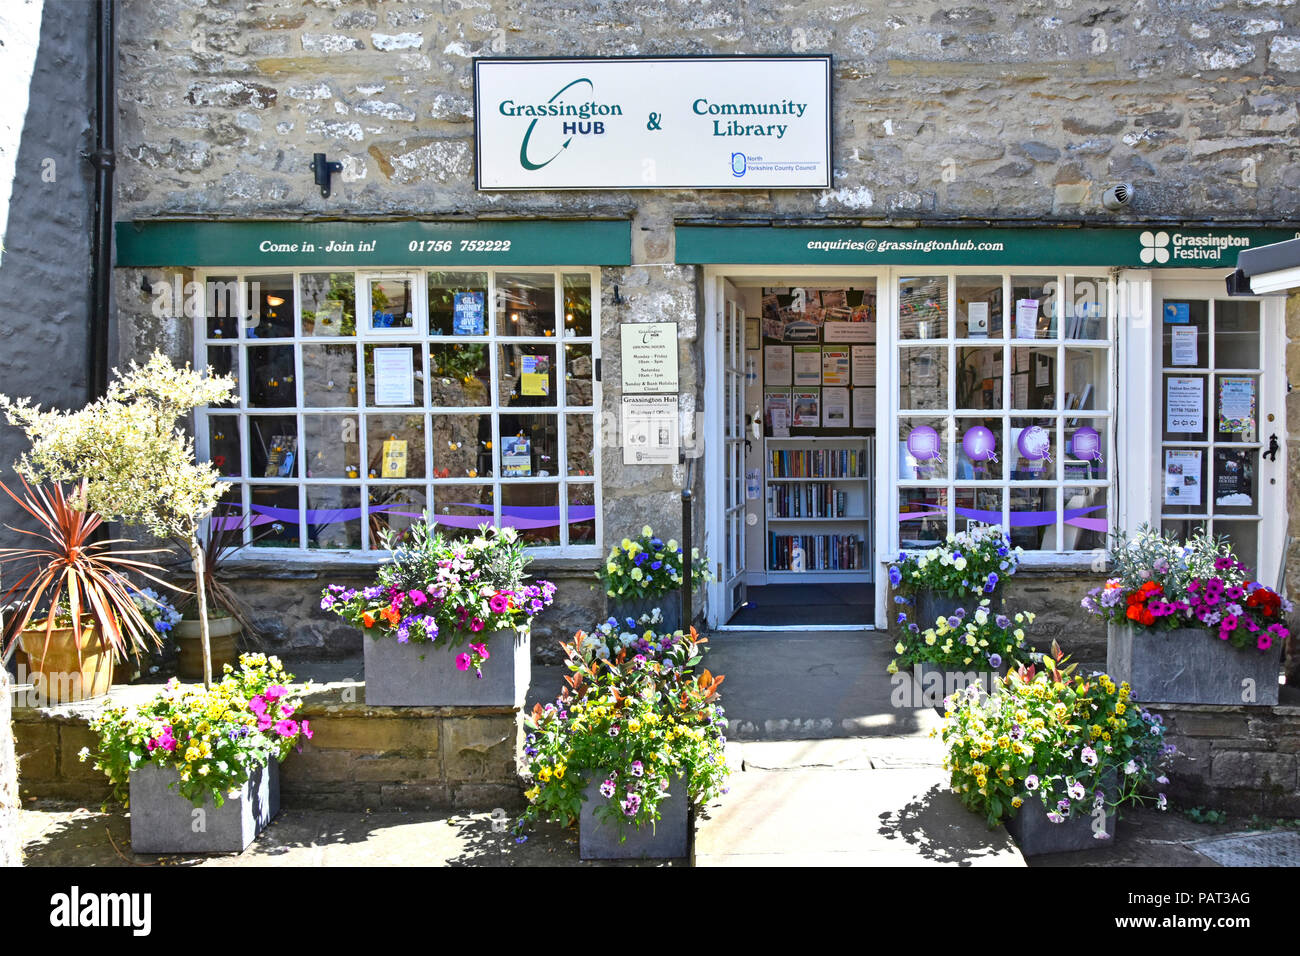 Grassington Hub Community Library project service run by mainly volunteer help shop front window & flower display Wharfedale North Yorkshire Dales UK - Stock Image